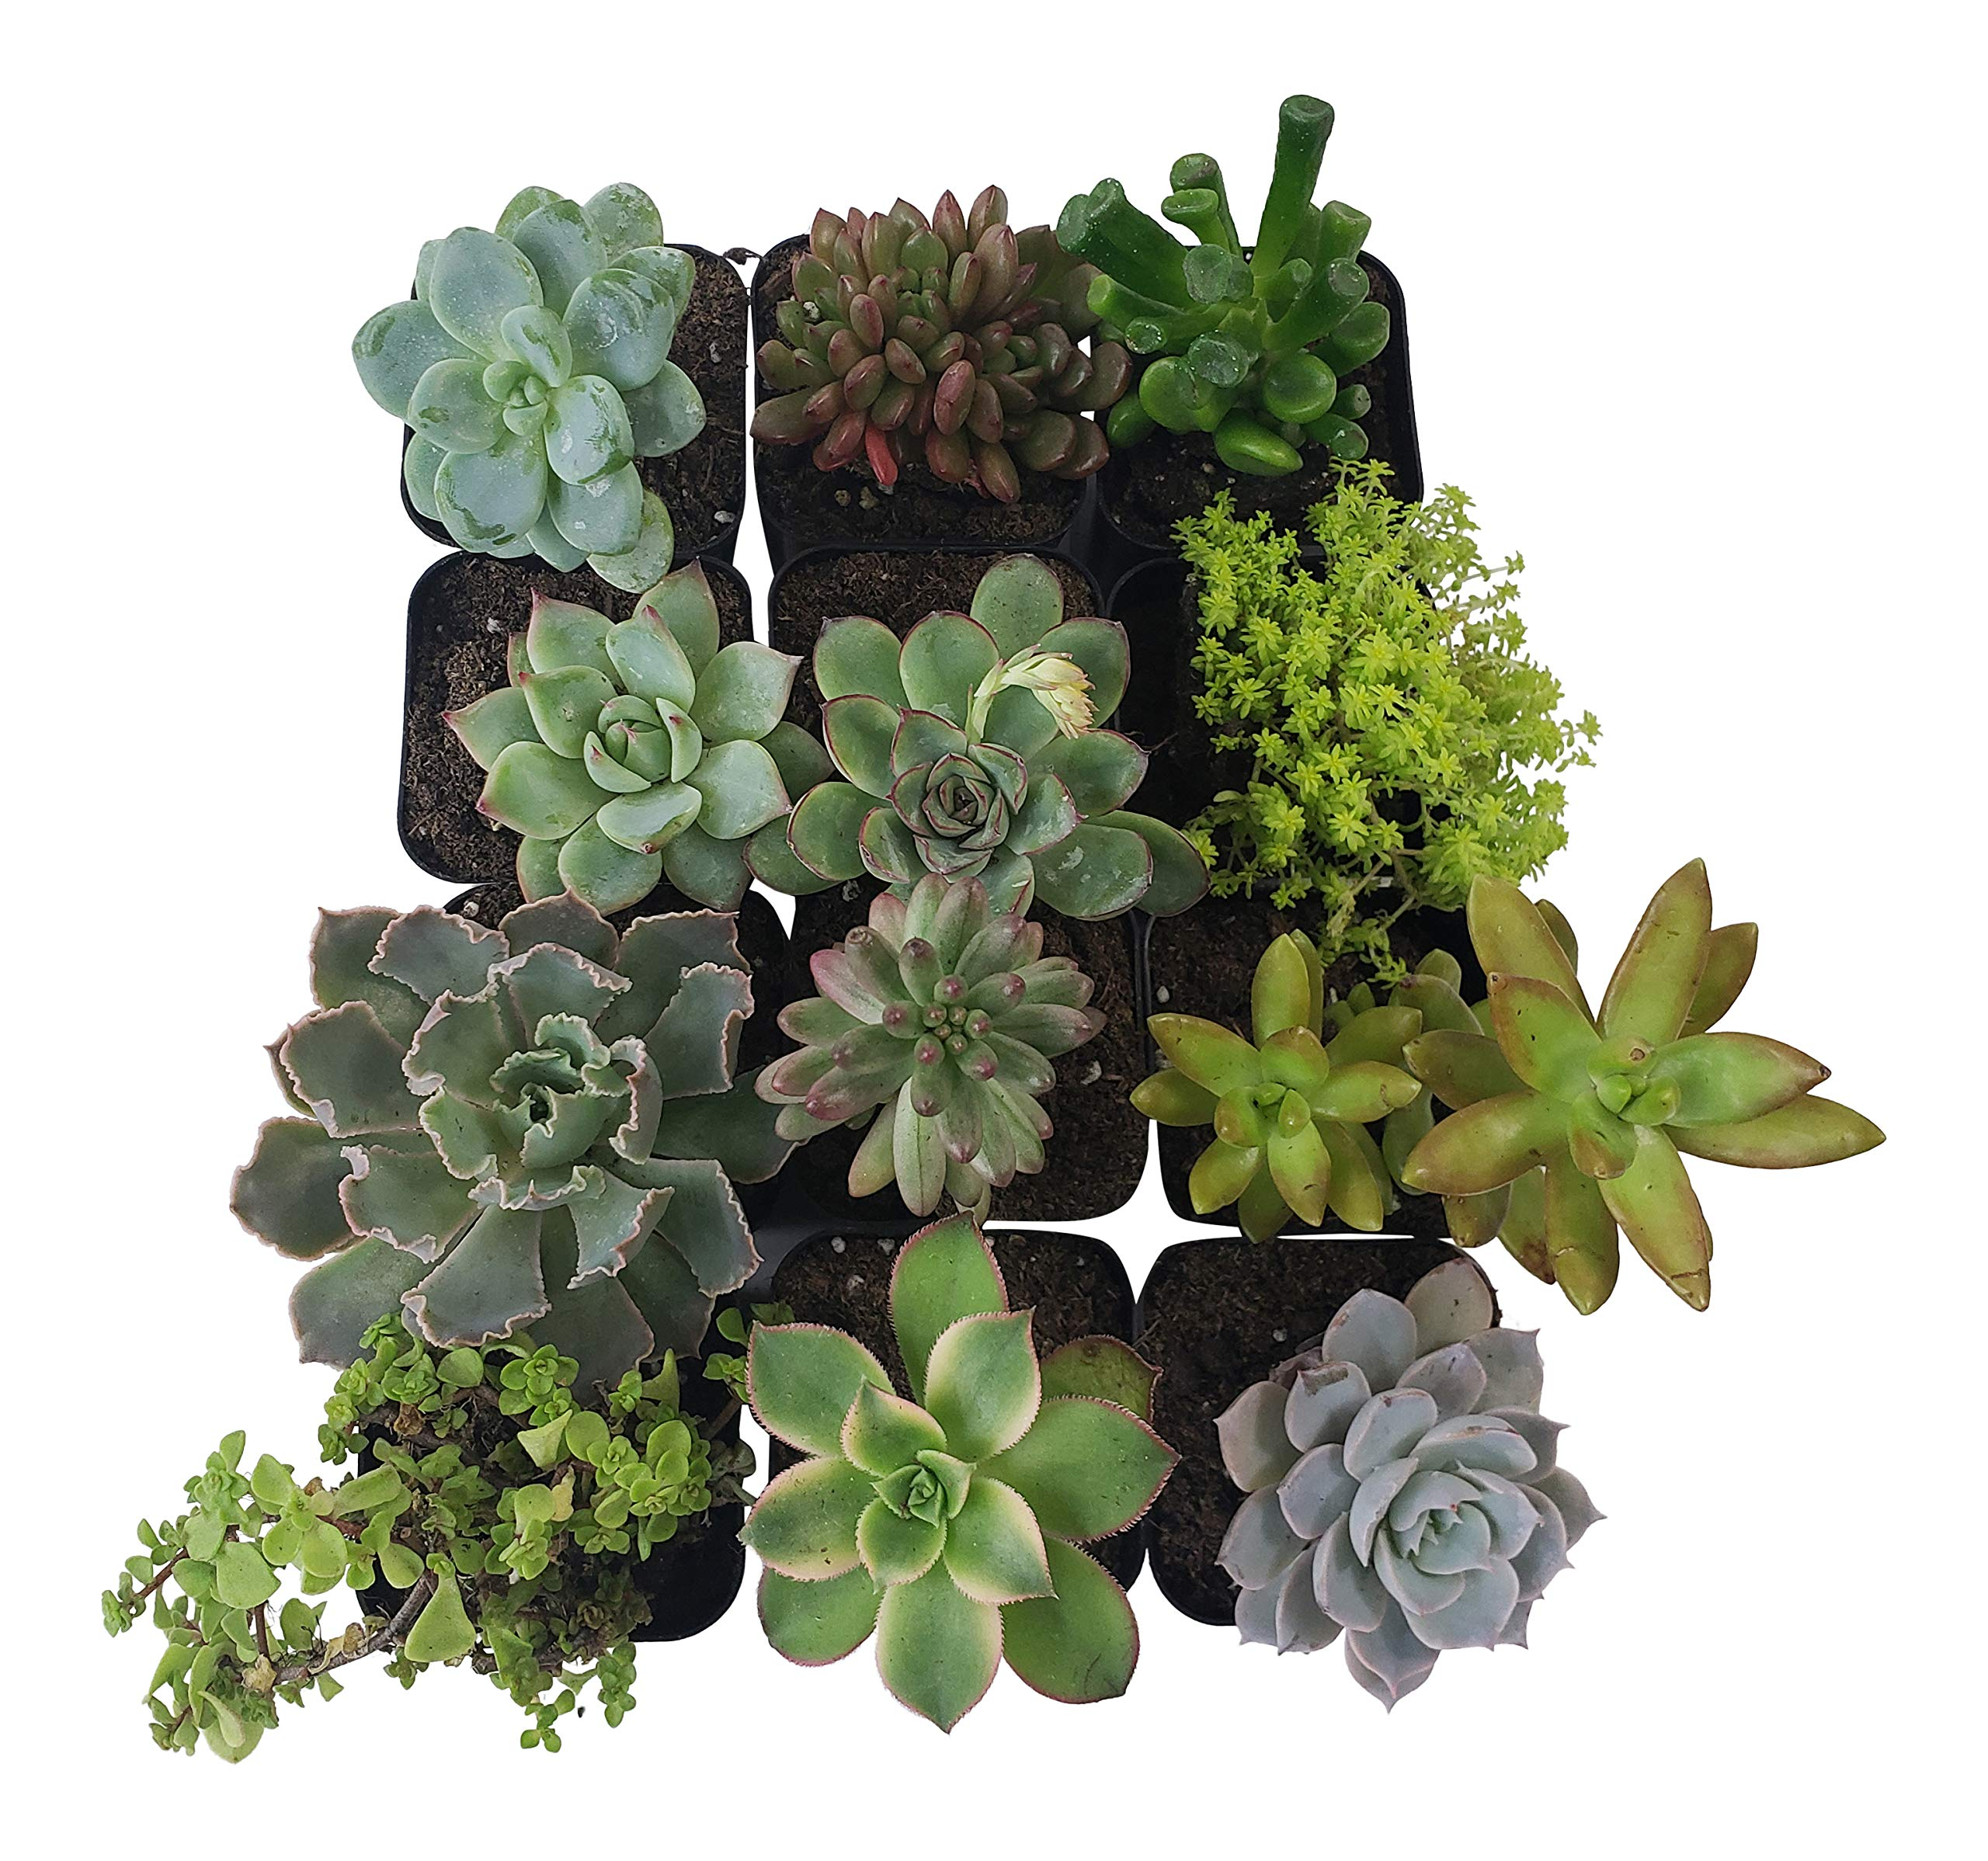 Succulent Plants [12 Pack Succulents] - Rooted 2 Inch Succulents in Planter Pots with Soil, Unique Live Indoor Plants for Decoration, Easy Care Plant Decor by Succulent Depot